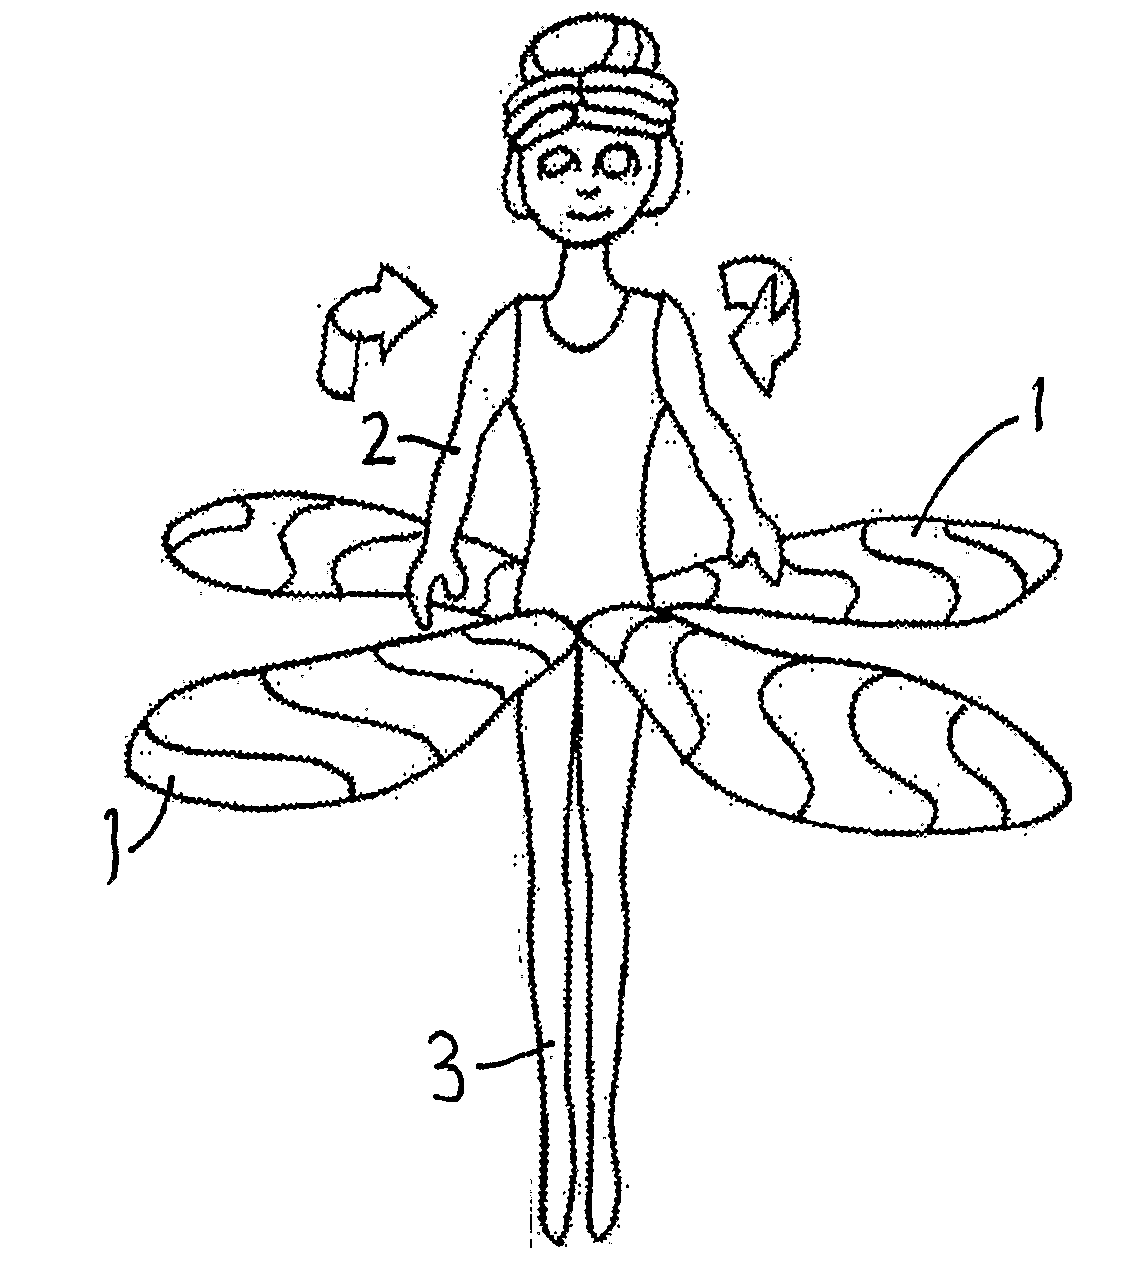 coast guard coloring pages - photo#33